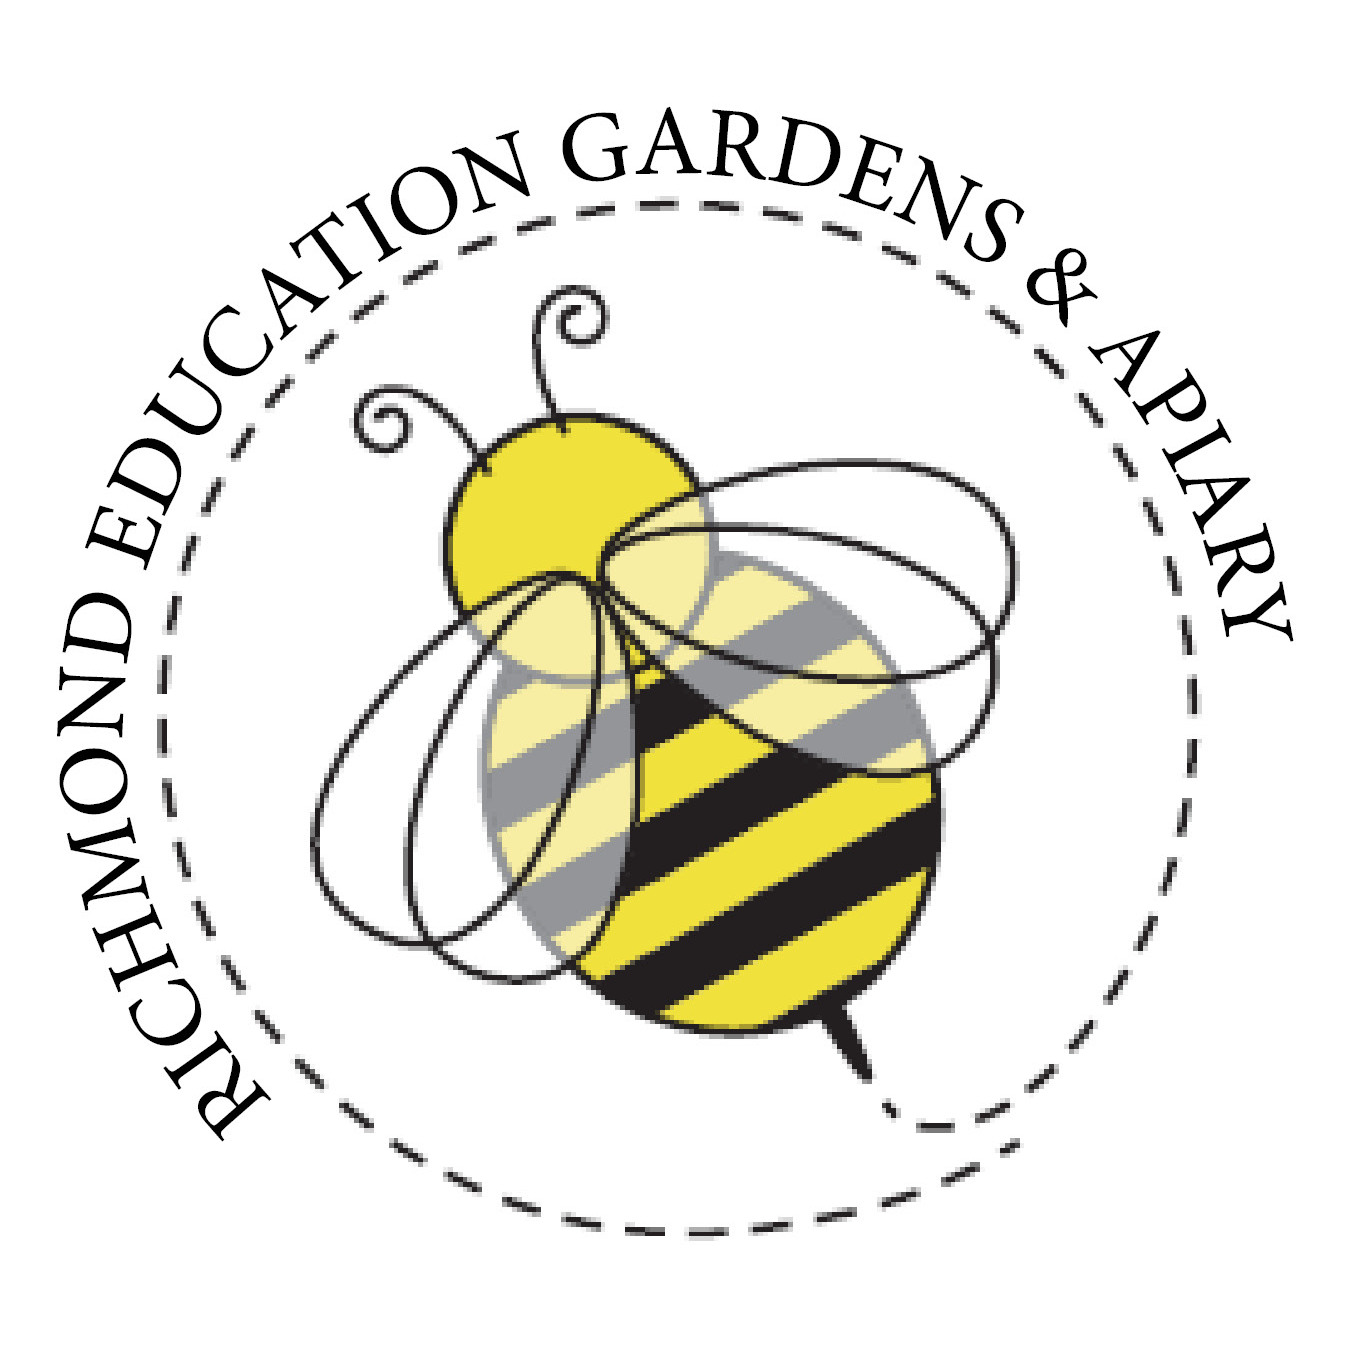 Richmond Garden logo